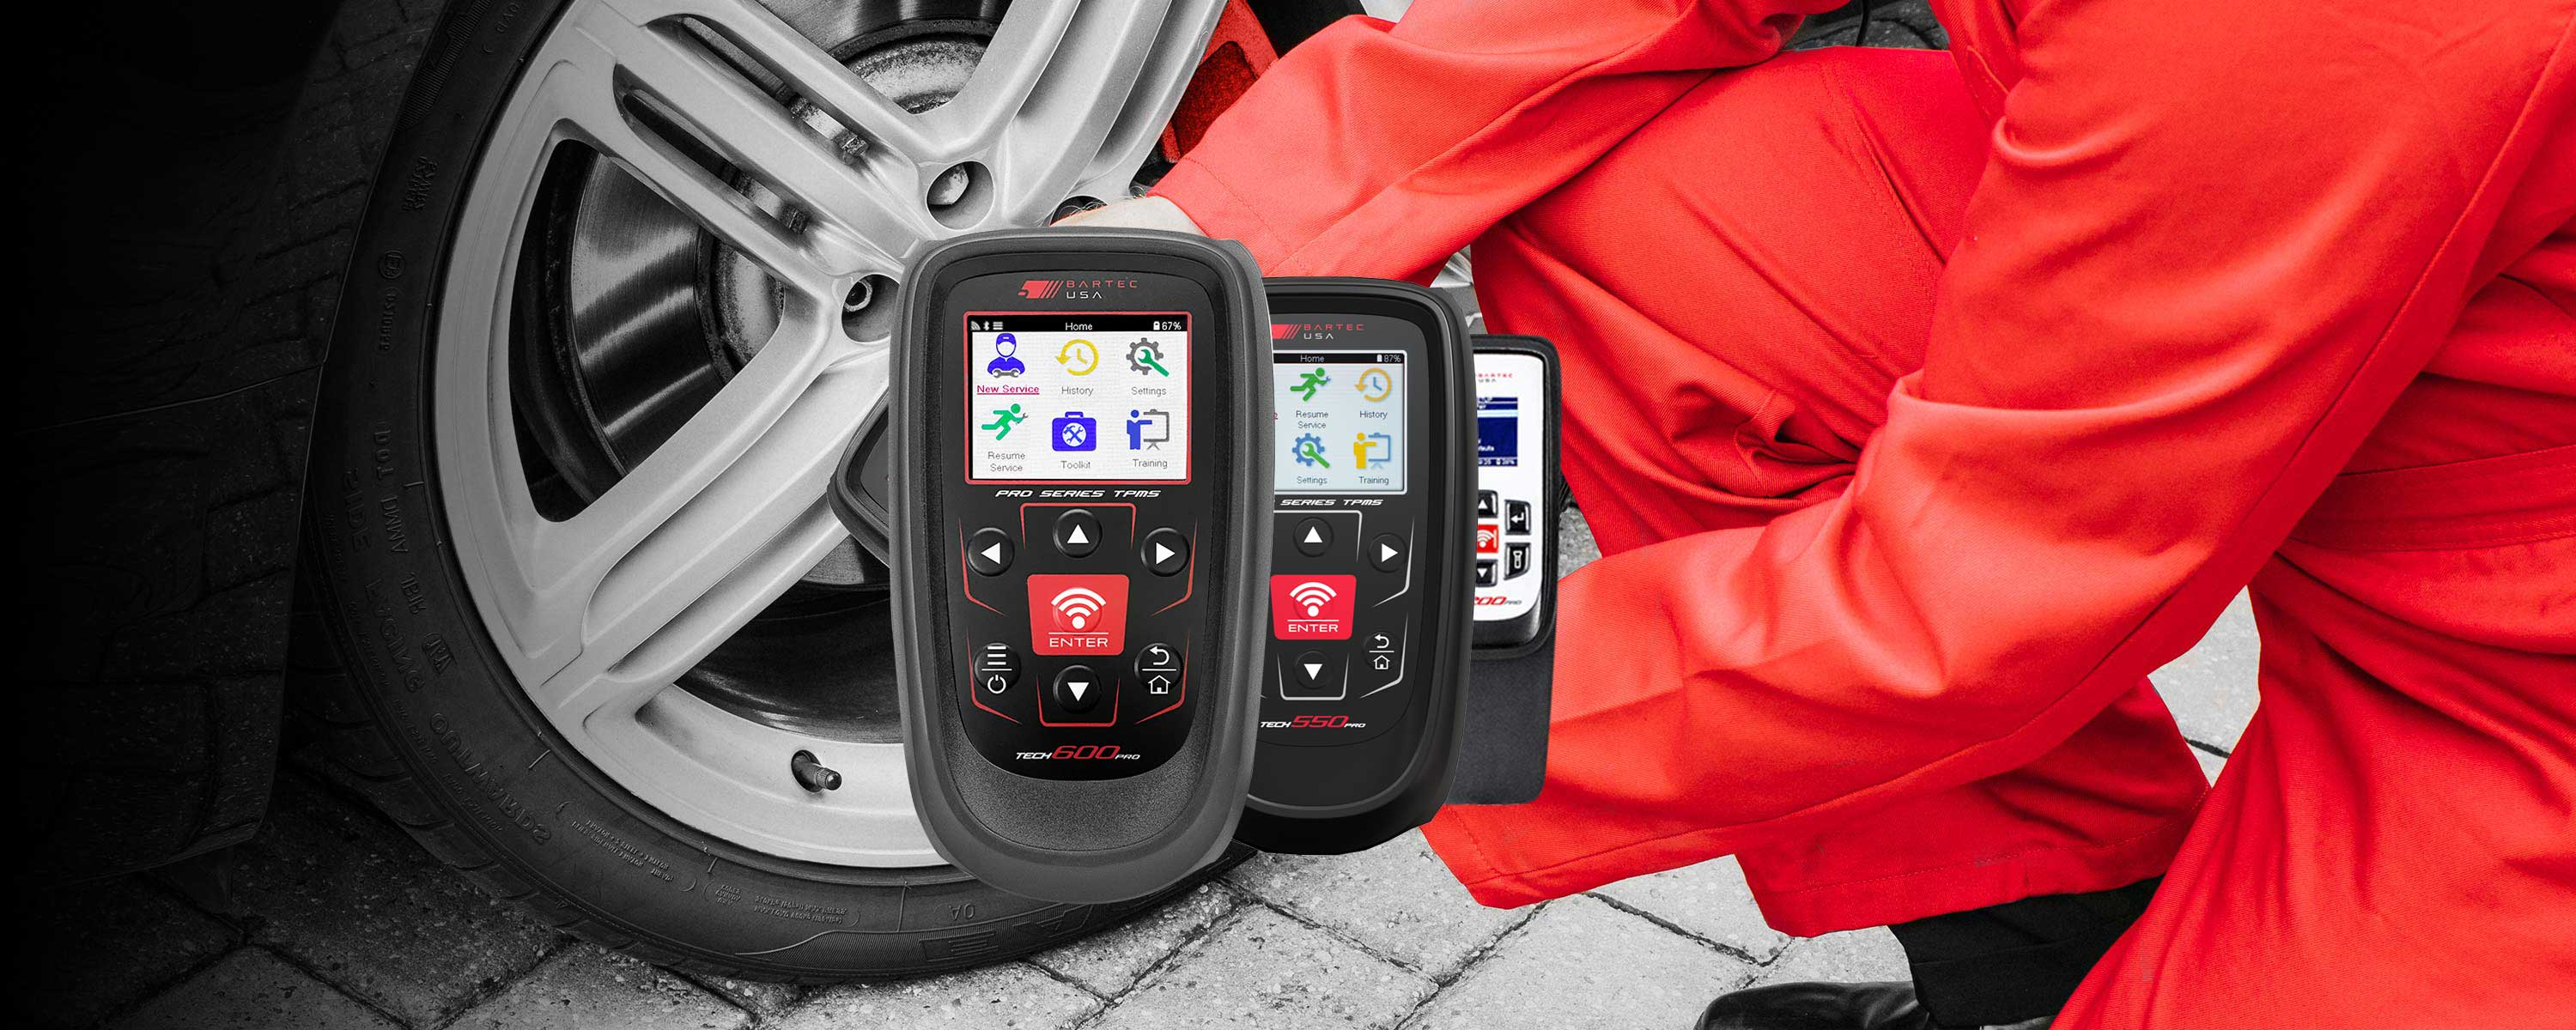 Outils TPMS